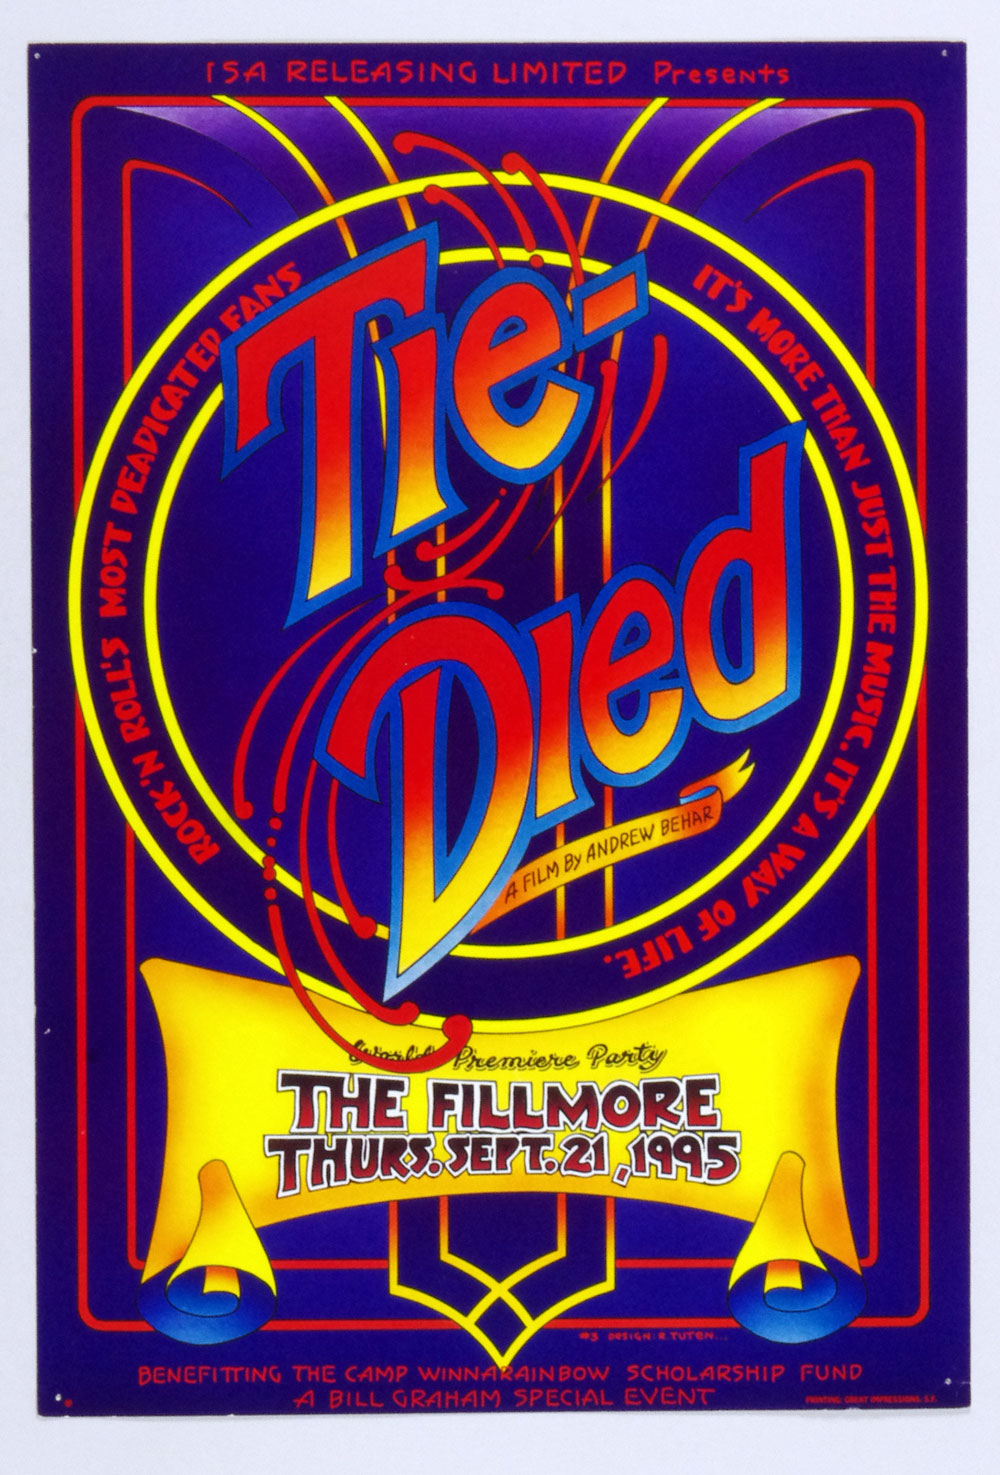 Bill Graham Presents Poster 1995 Sep 21 Tie Died World Premier Andrew Behar #3